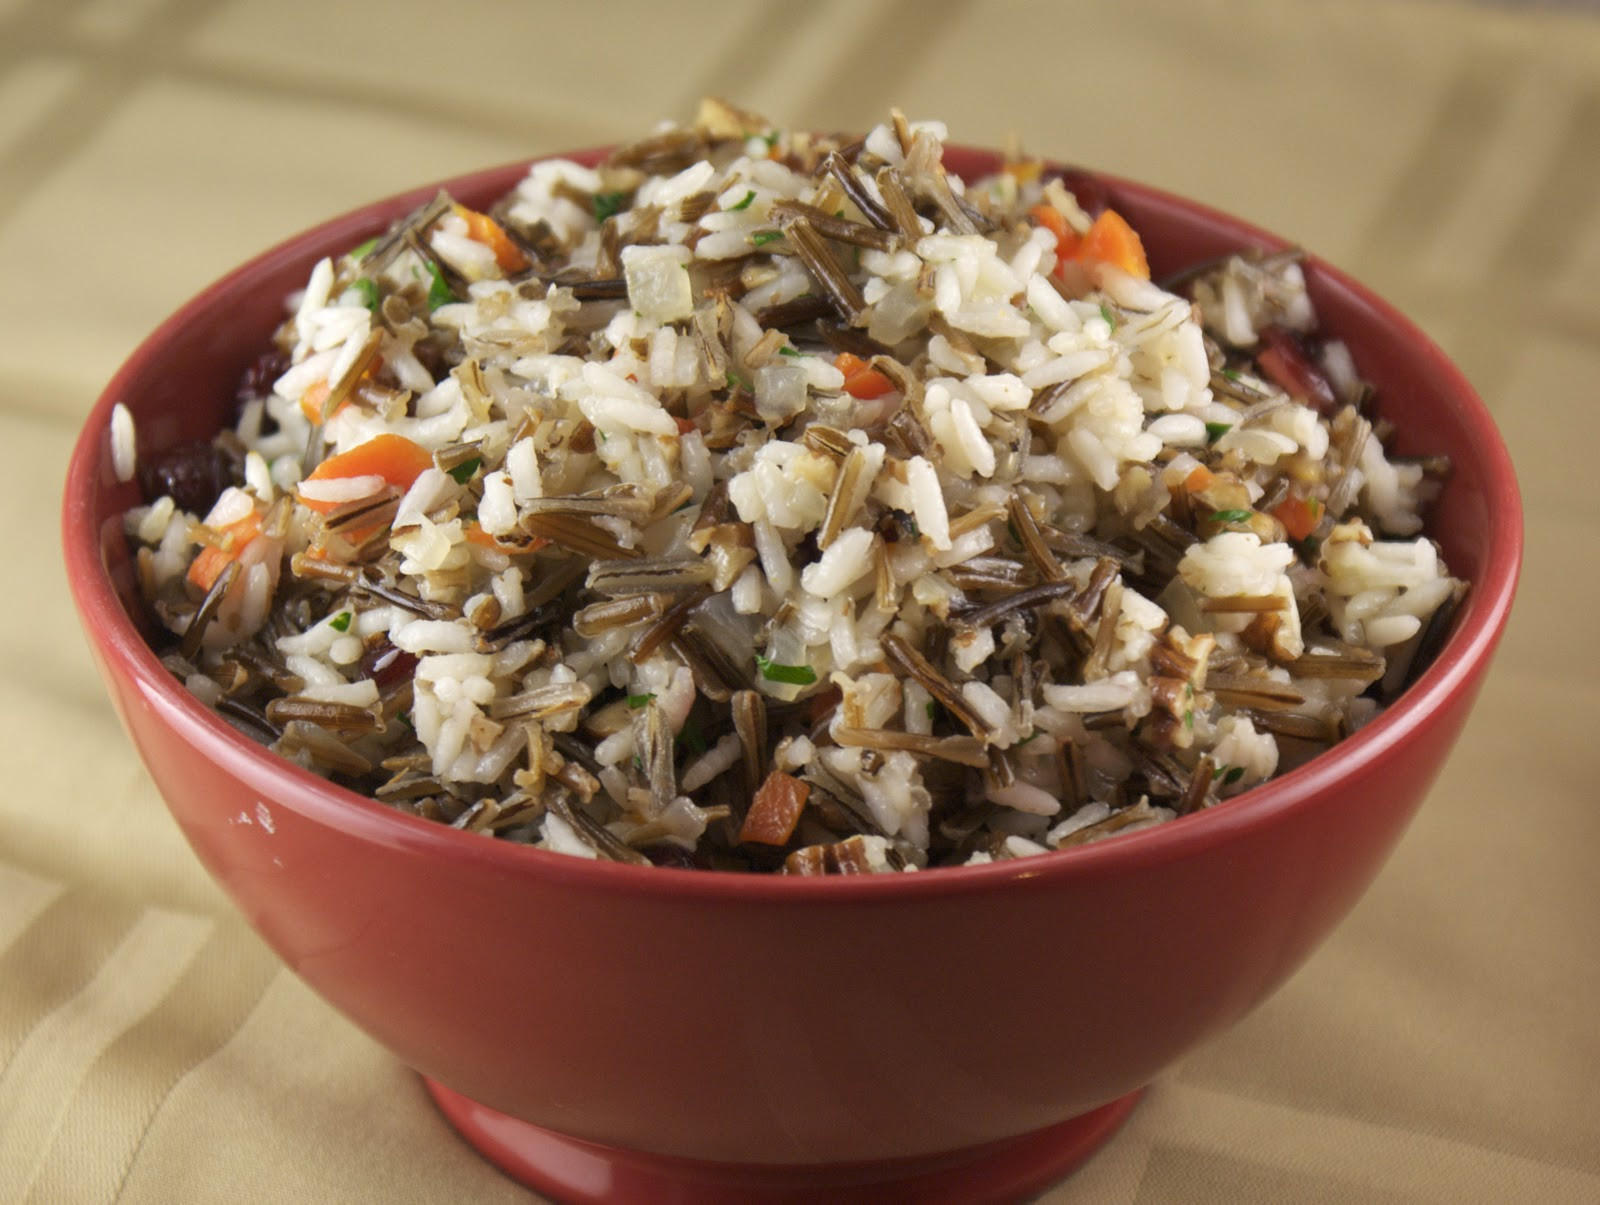 Wild Rice Pilaf Recipe  Wild Rice Pilaf with Pecans and Cranberries Heat Oven to 350